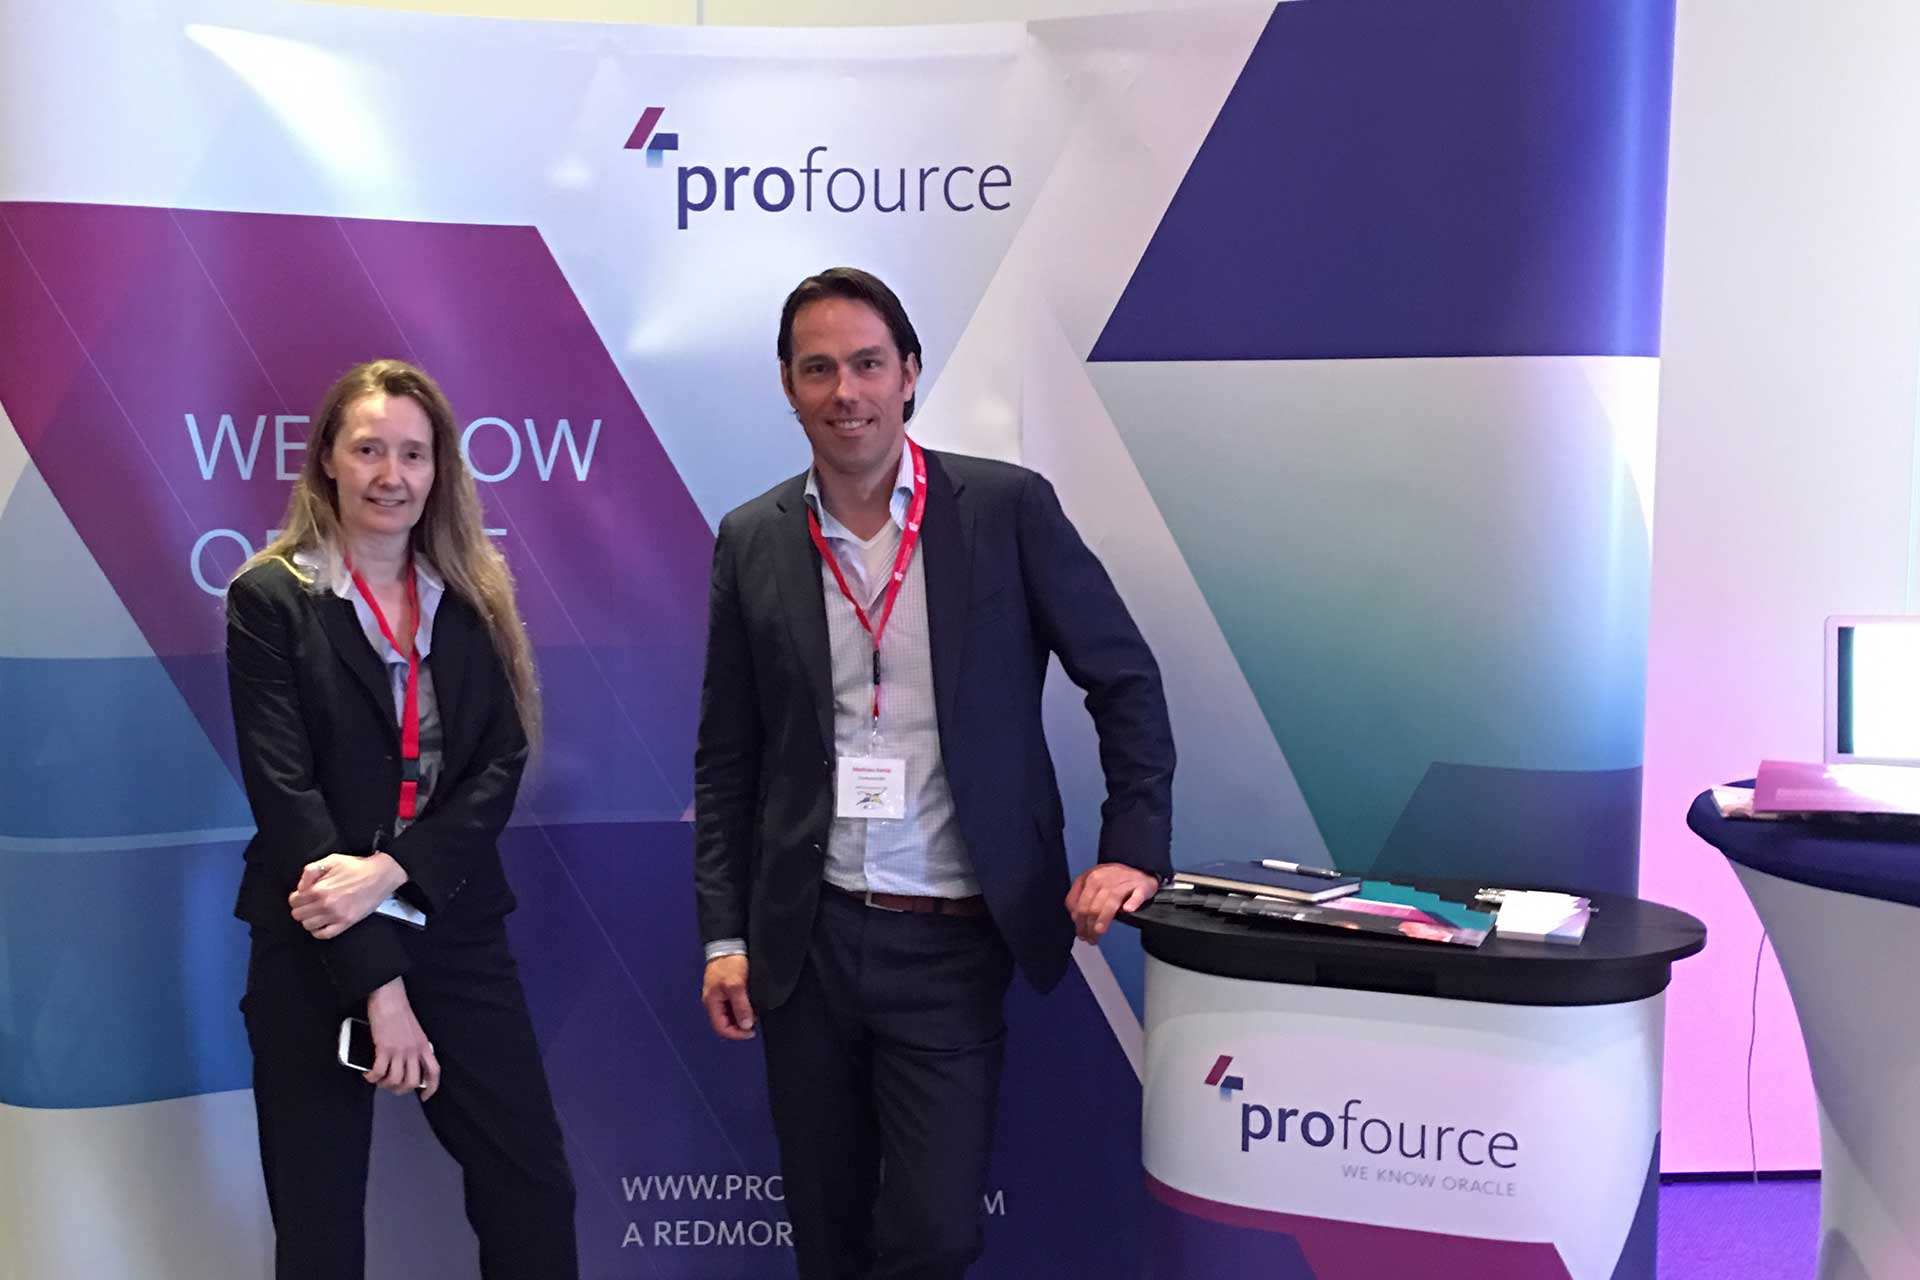 profource-op-obug-beurs-apps-connected16